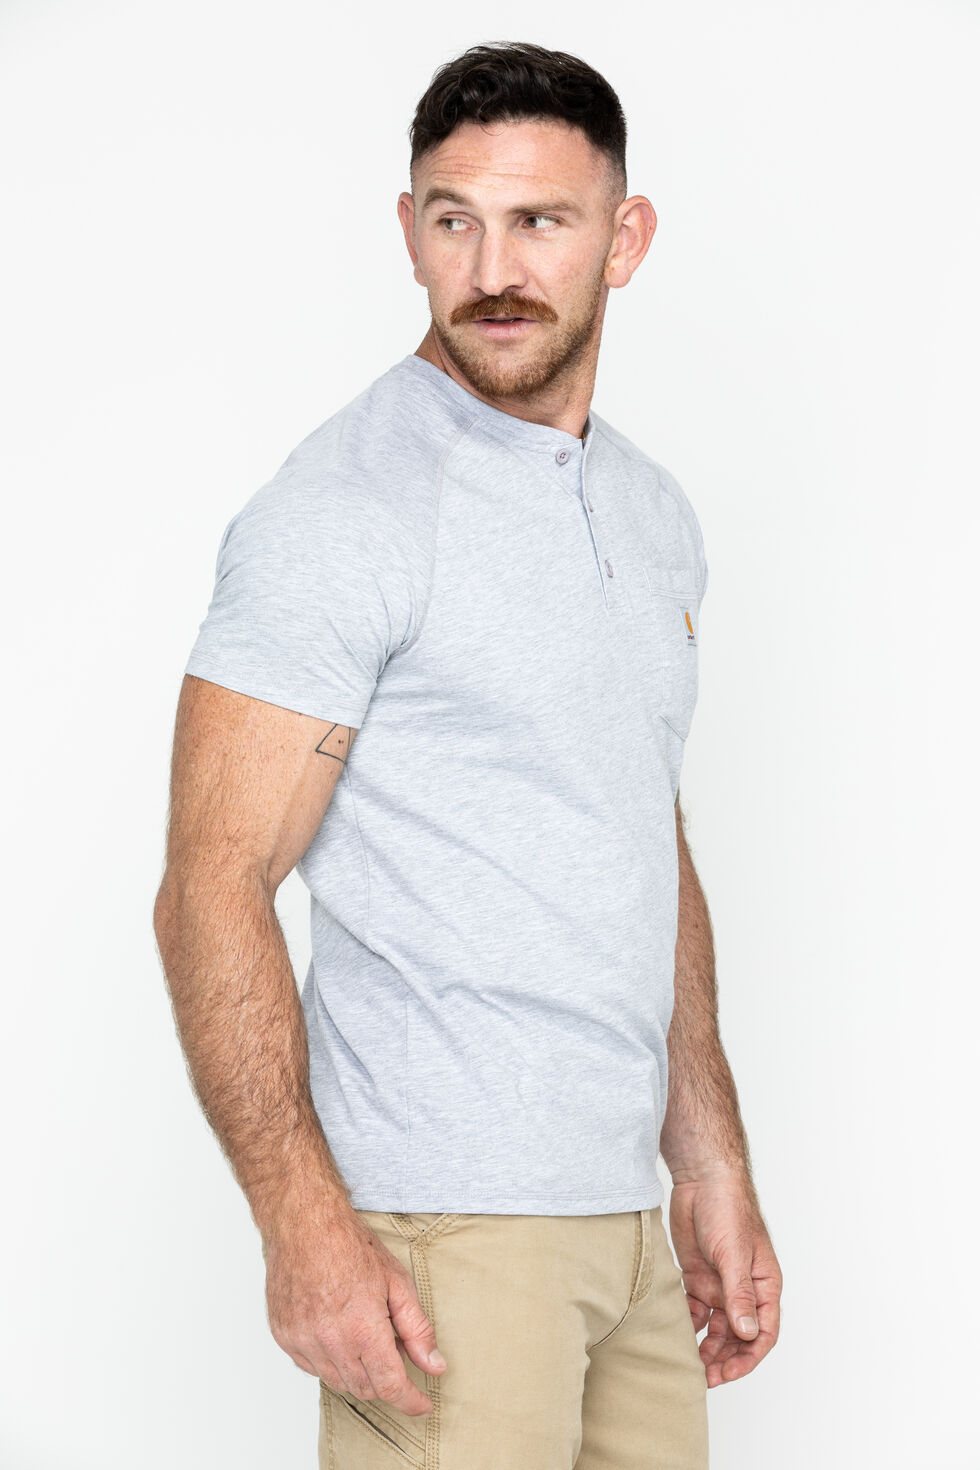 Carhartt Force Cotton Henley Shirt, Grey, hi-res